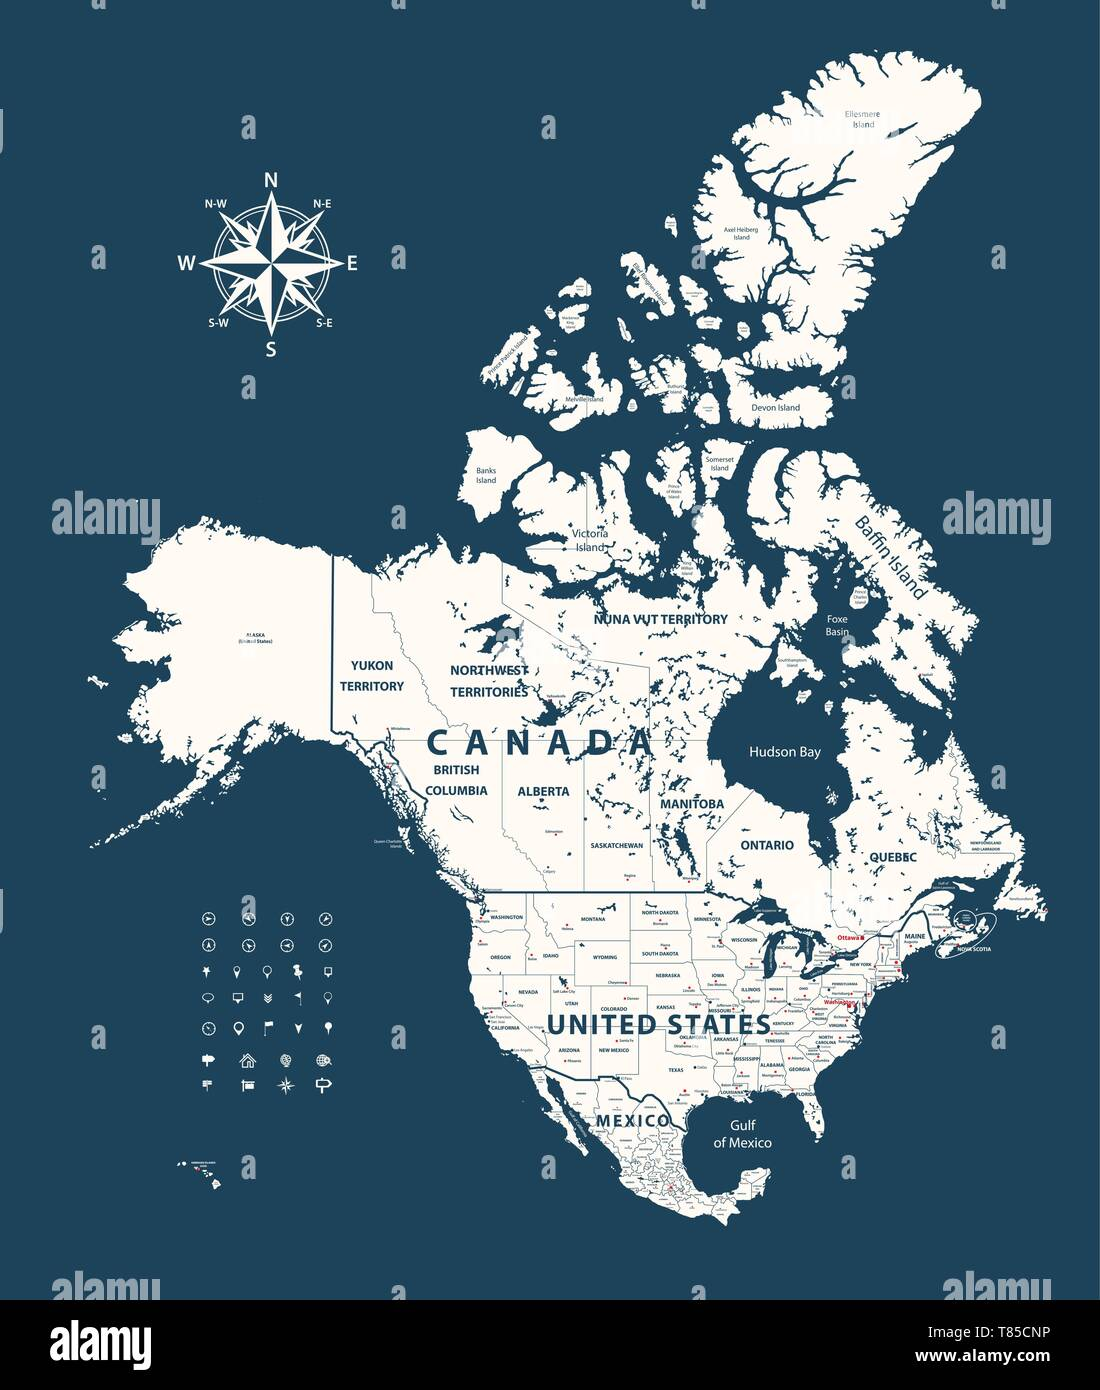 Picture of: Vector Map Of Canada United States And Mexico With States Borders And Capital Cities Stock Vector Image Art Alamy